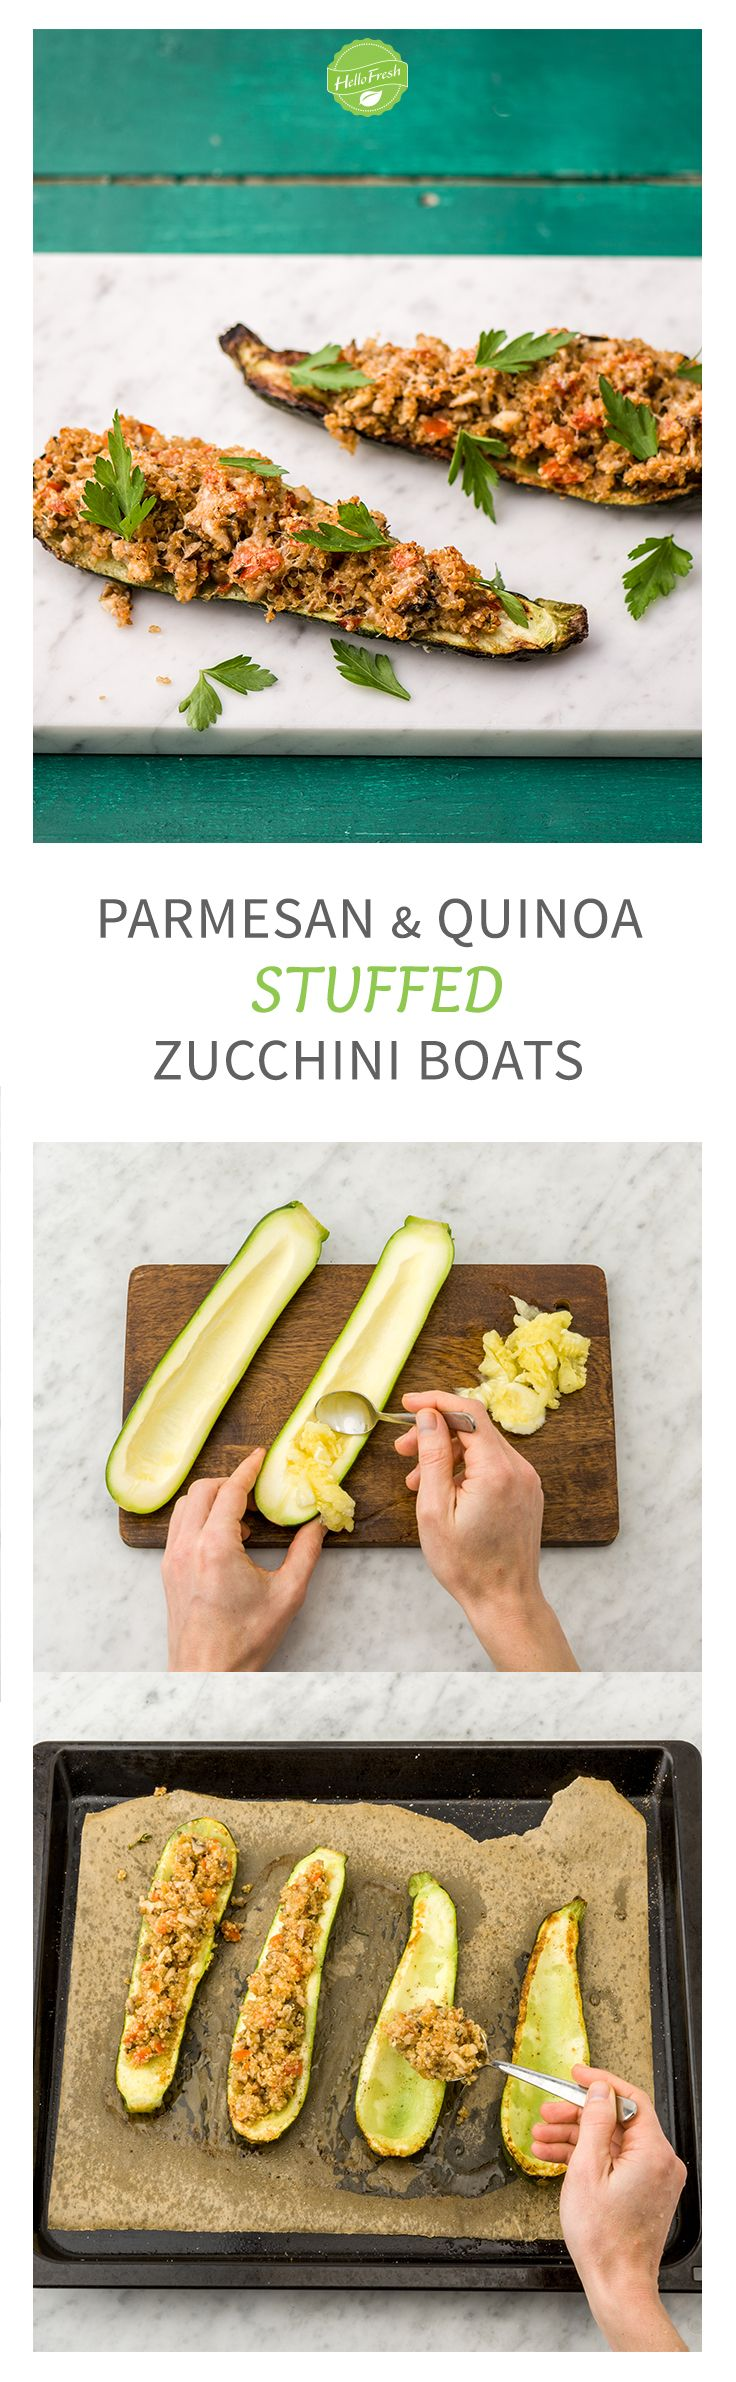 Easy and Healthy Stuffed Zucchini Boats with Mushroom Duxelles, Quinoa, and Parmesan   HelloFresh Recipe